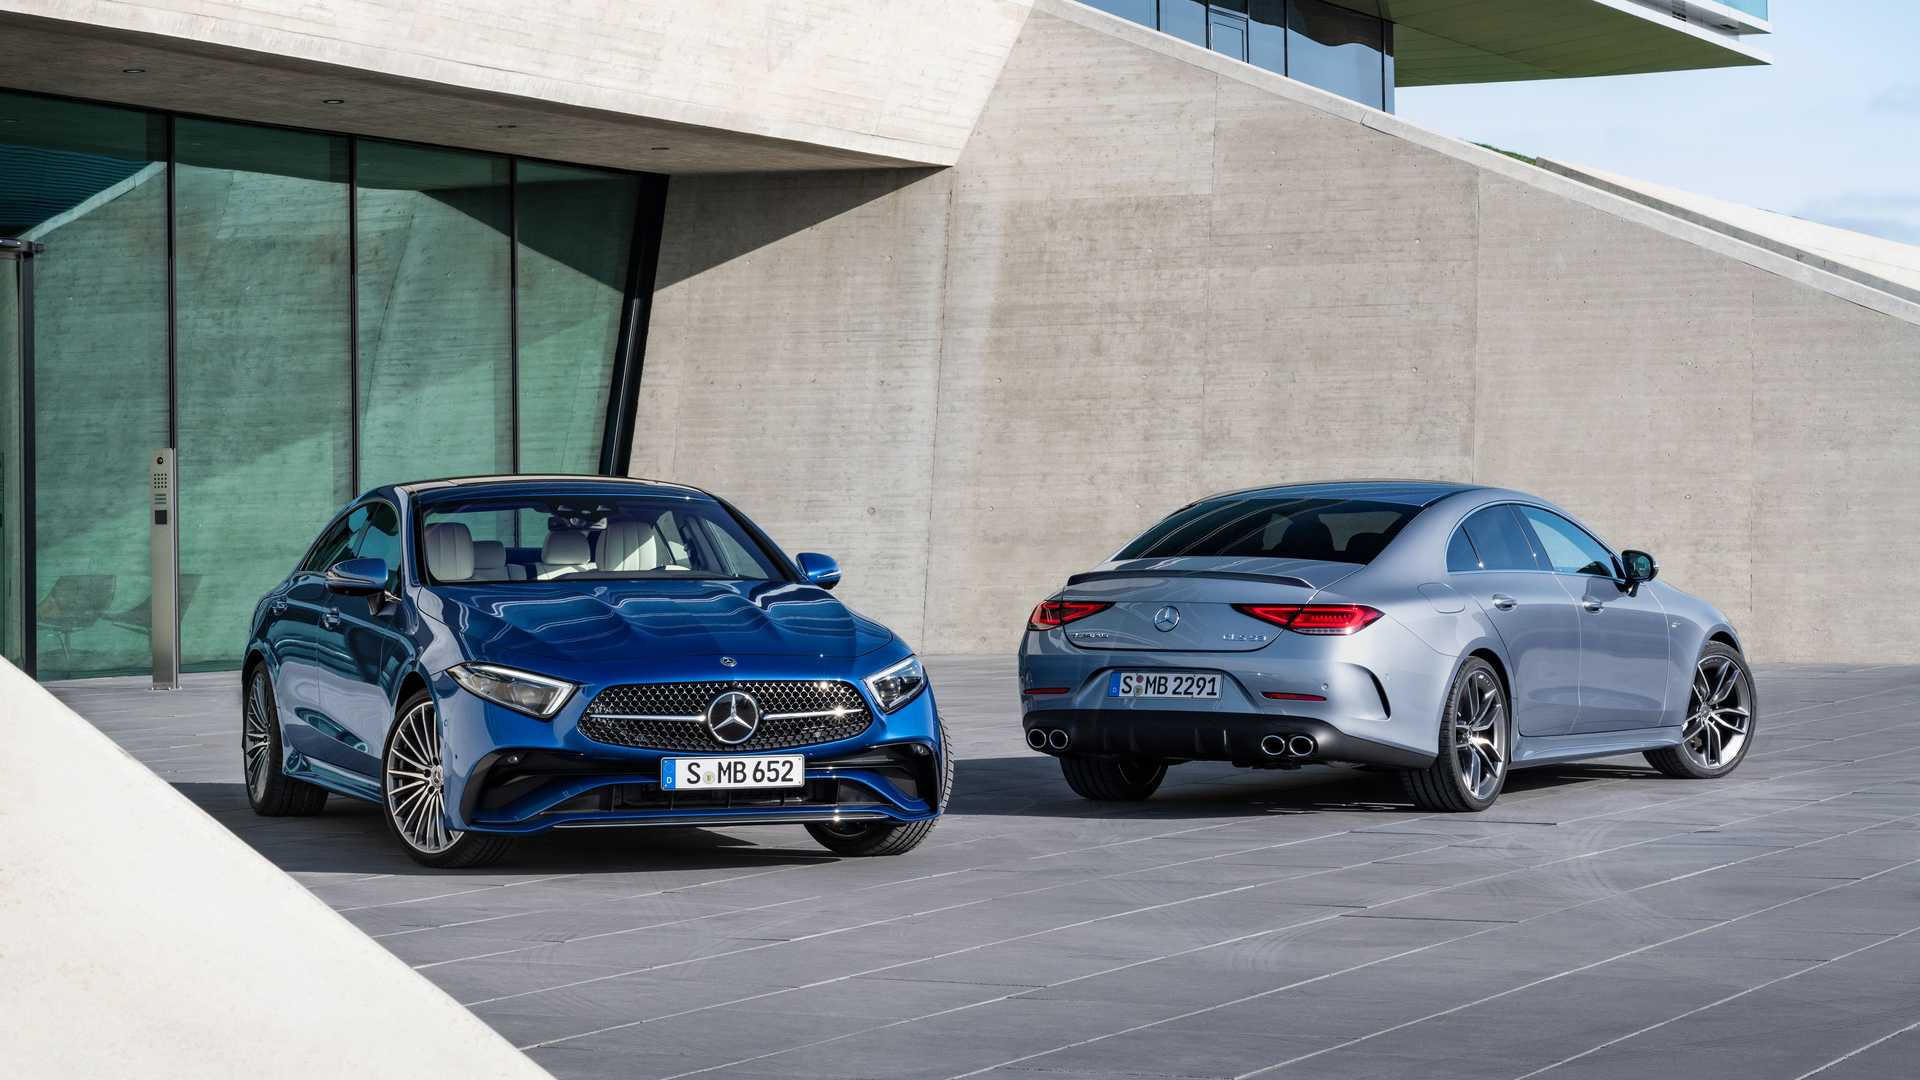 2022-mercedes-benz-cls-450-4matic-collection.jpg